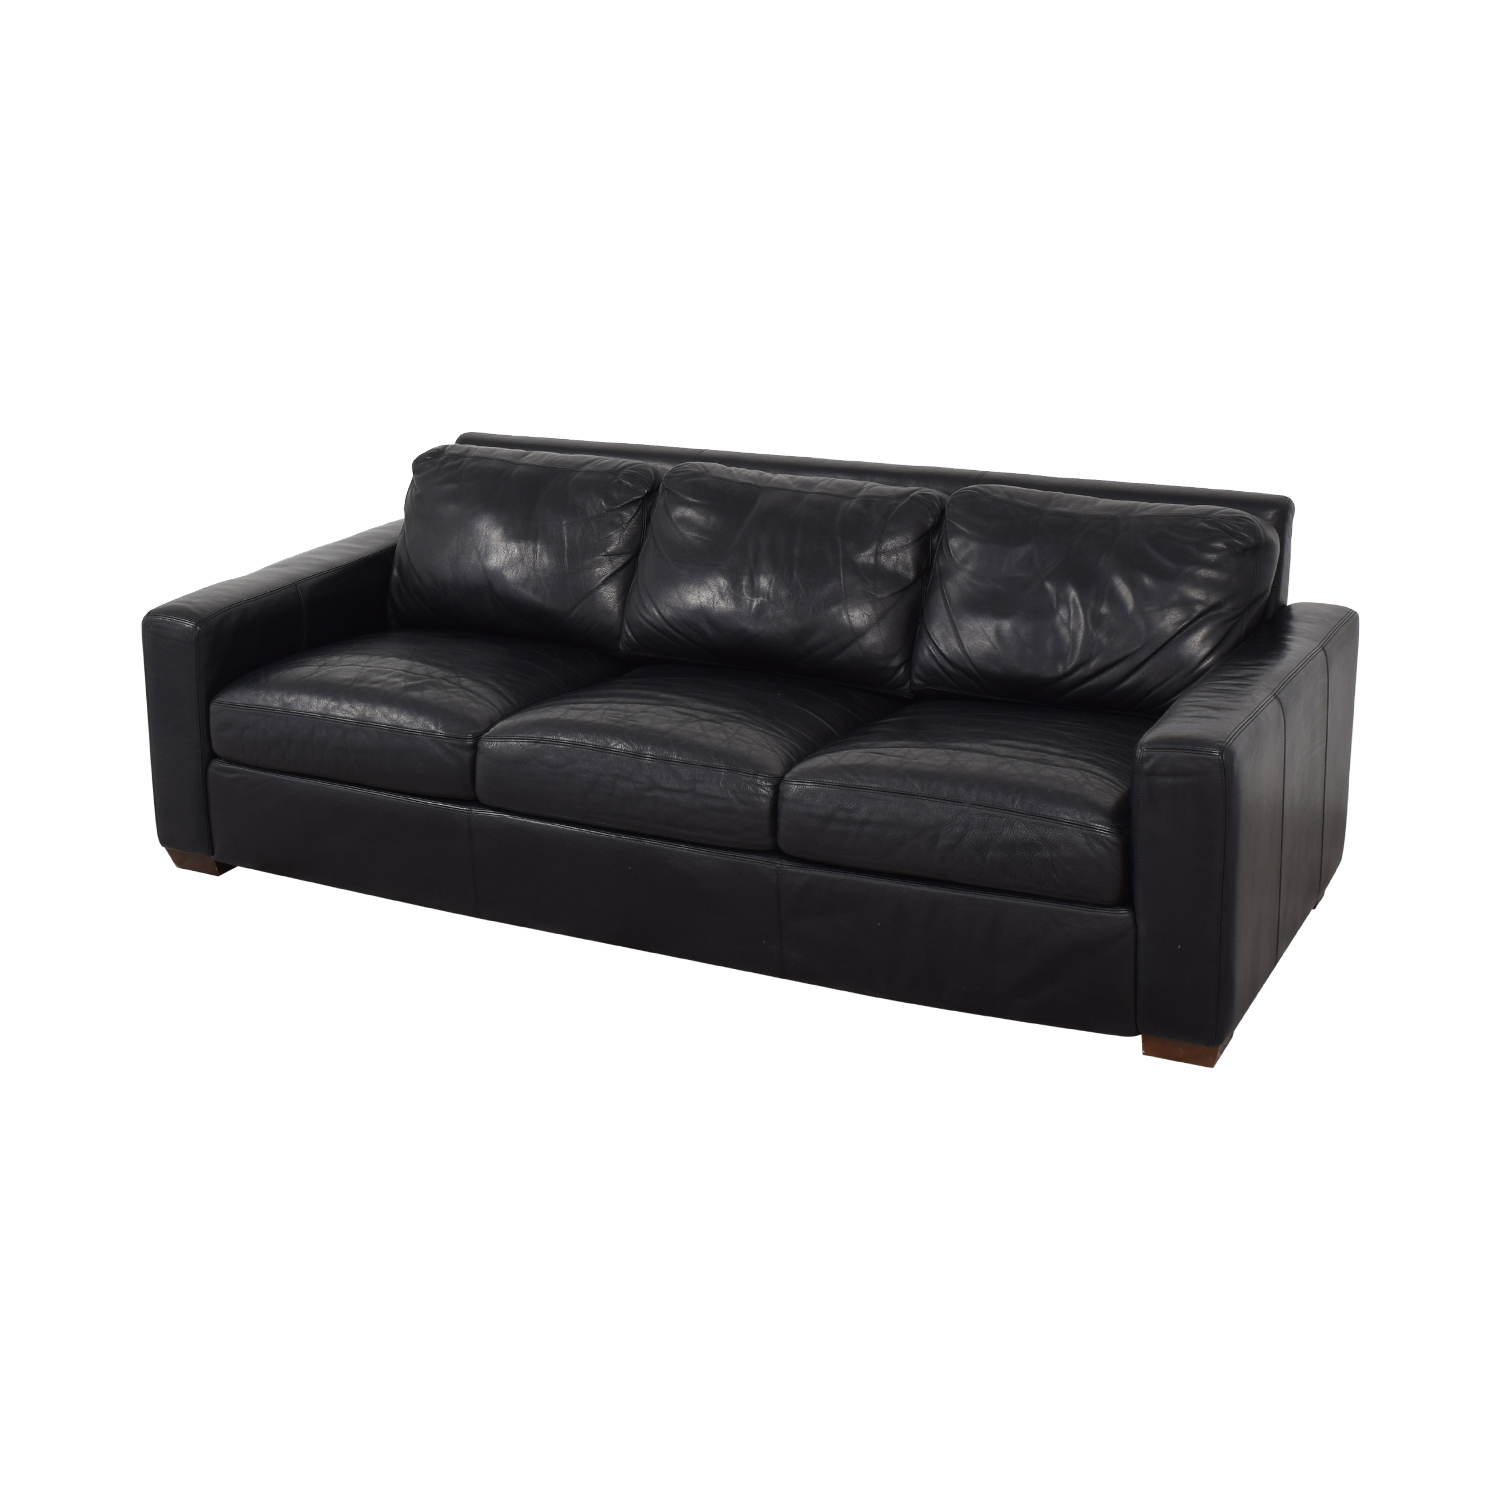 Design Within Reach Design Within Reach Portola Sofa ma